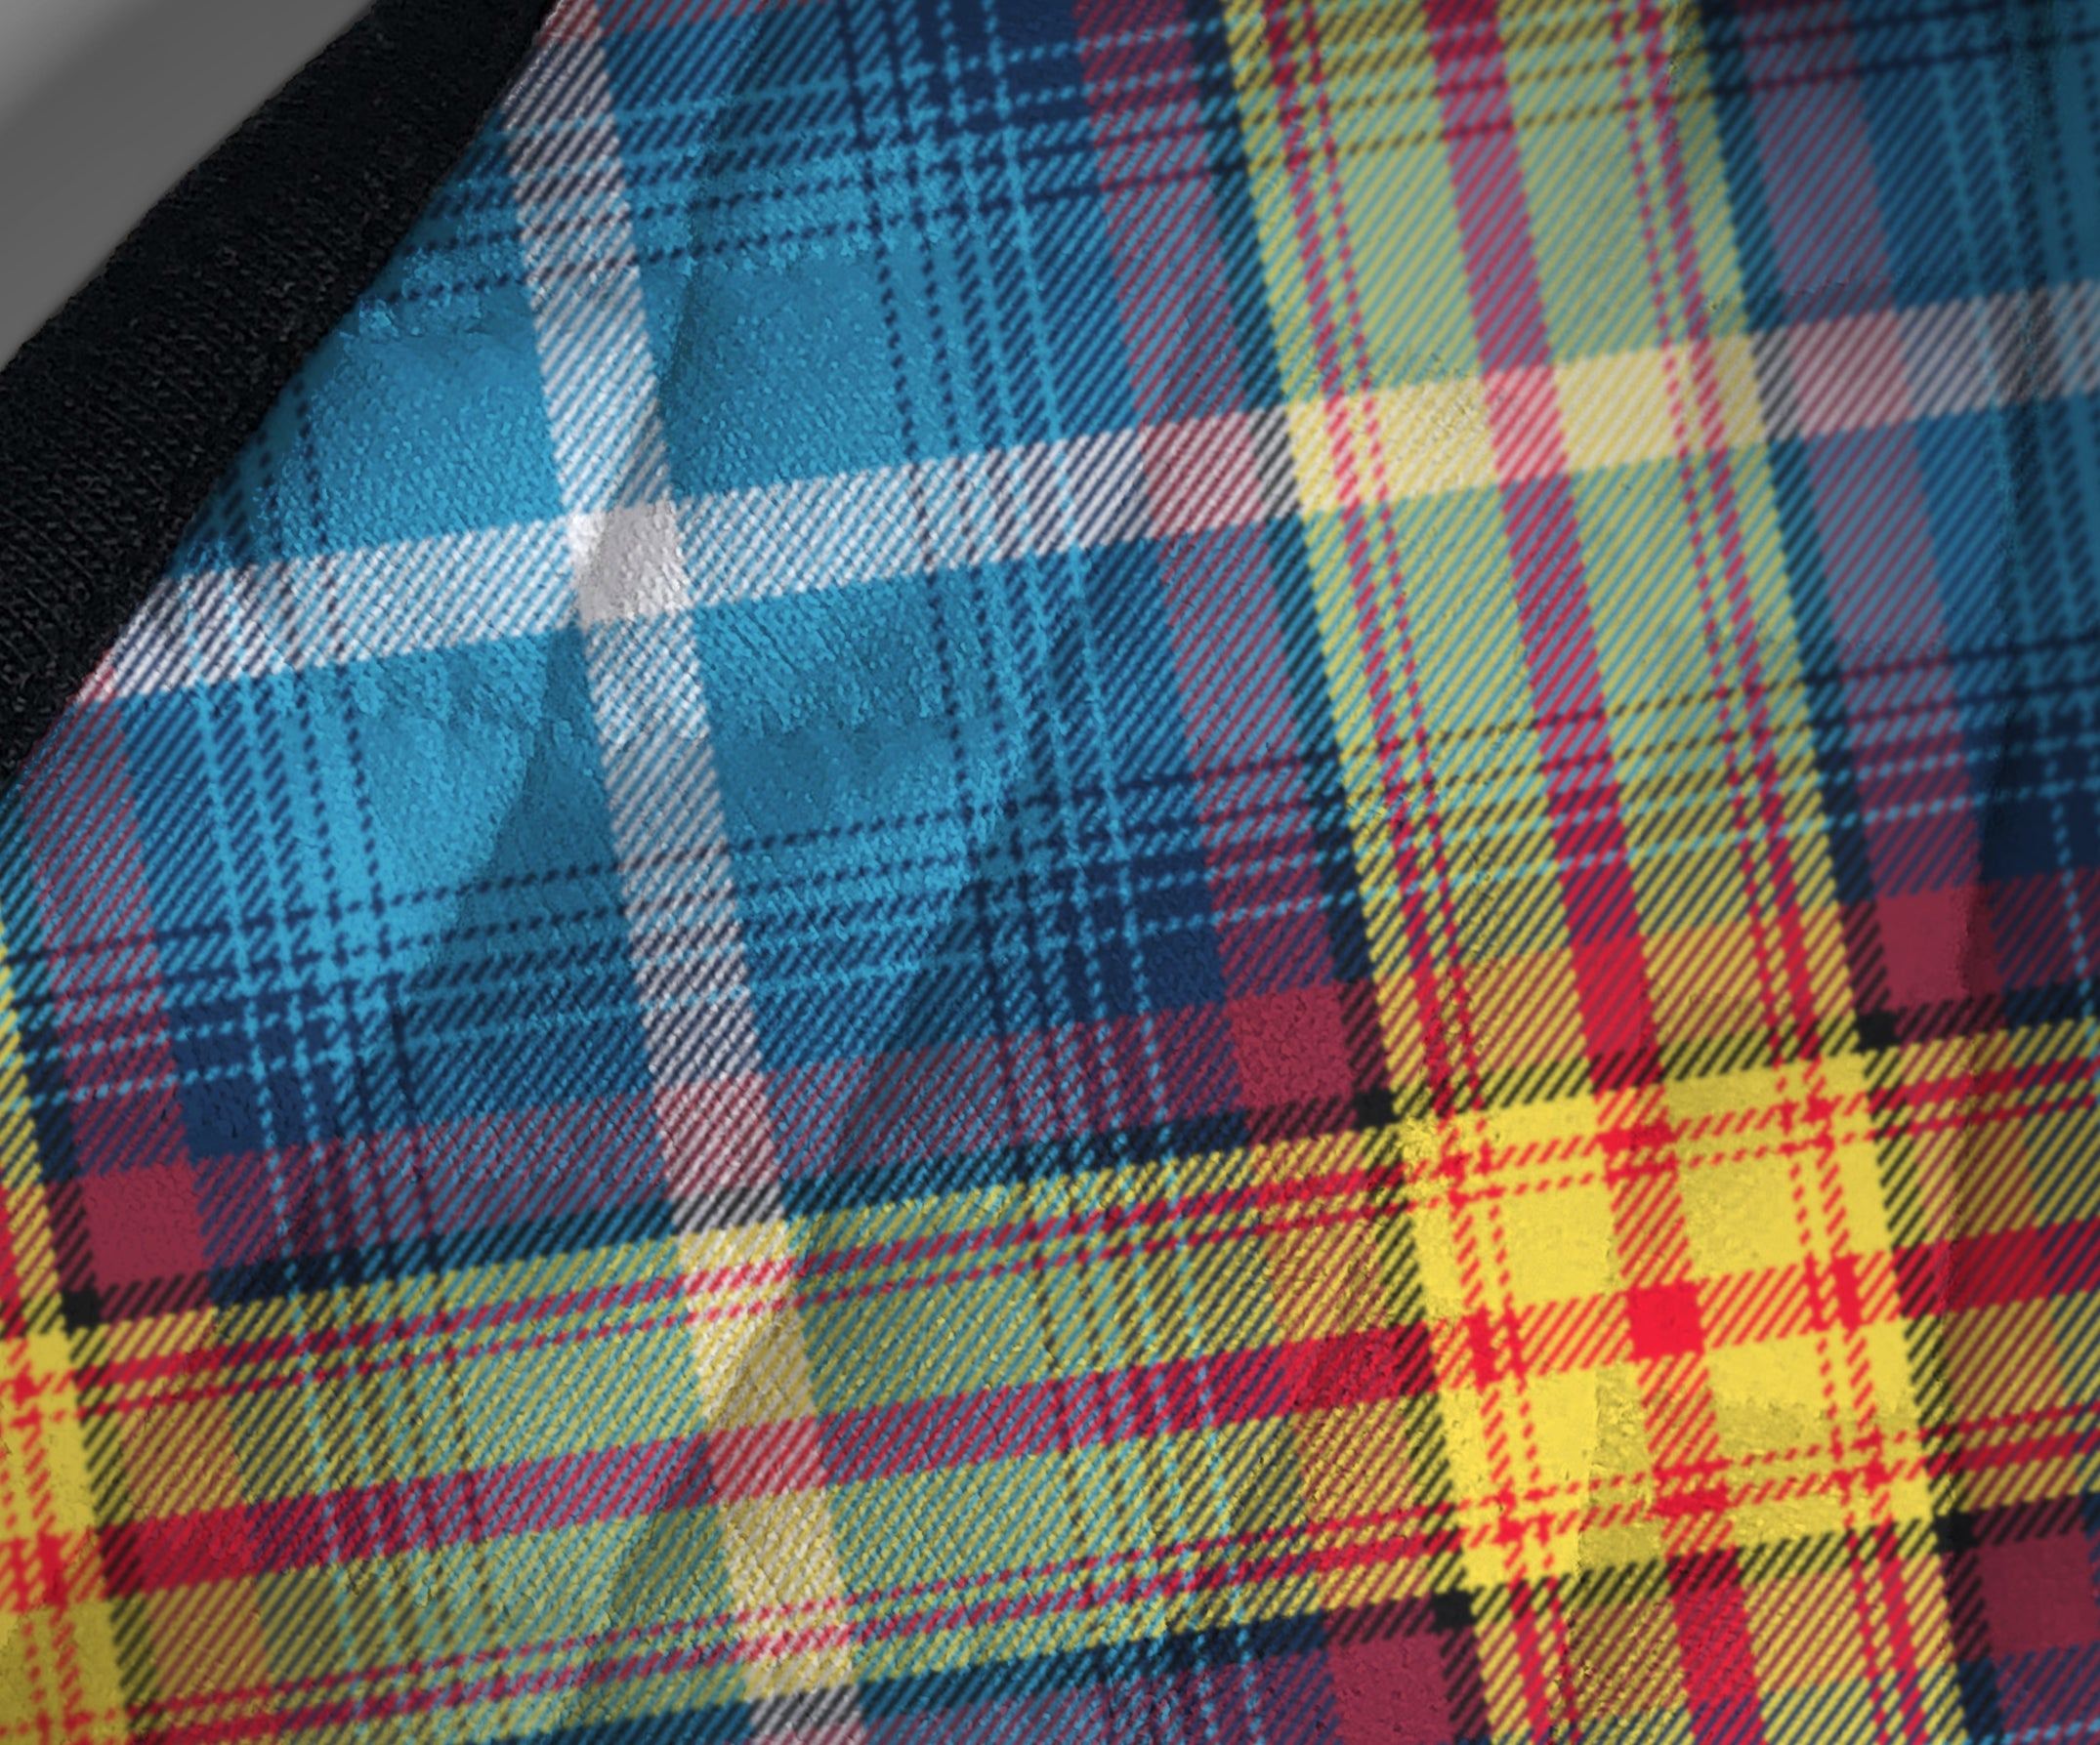 Contoured Face Mask - face covering - Nicola Sturgeon - Declaration of Scottish Independence tartan - by Steven Patrick Sim the Tartan Artisan - Stevie Tartan Guy - printed fabric 1 - large